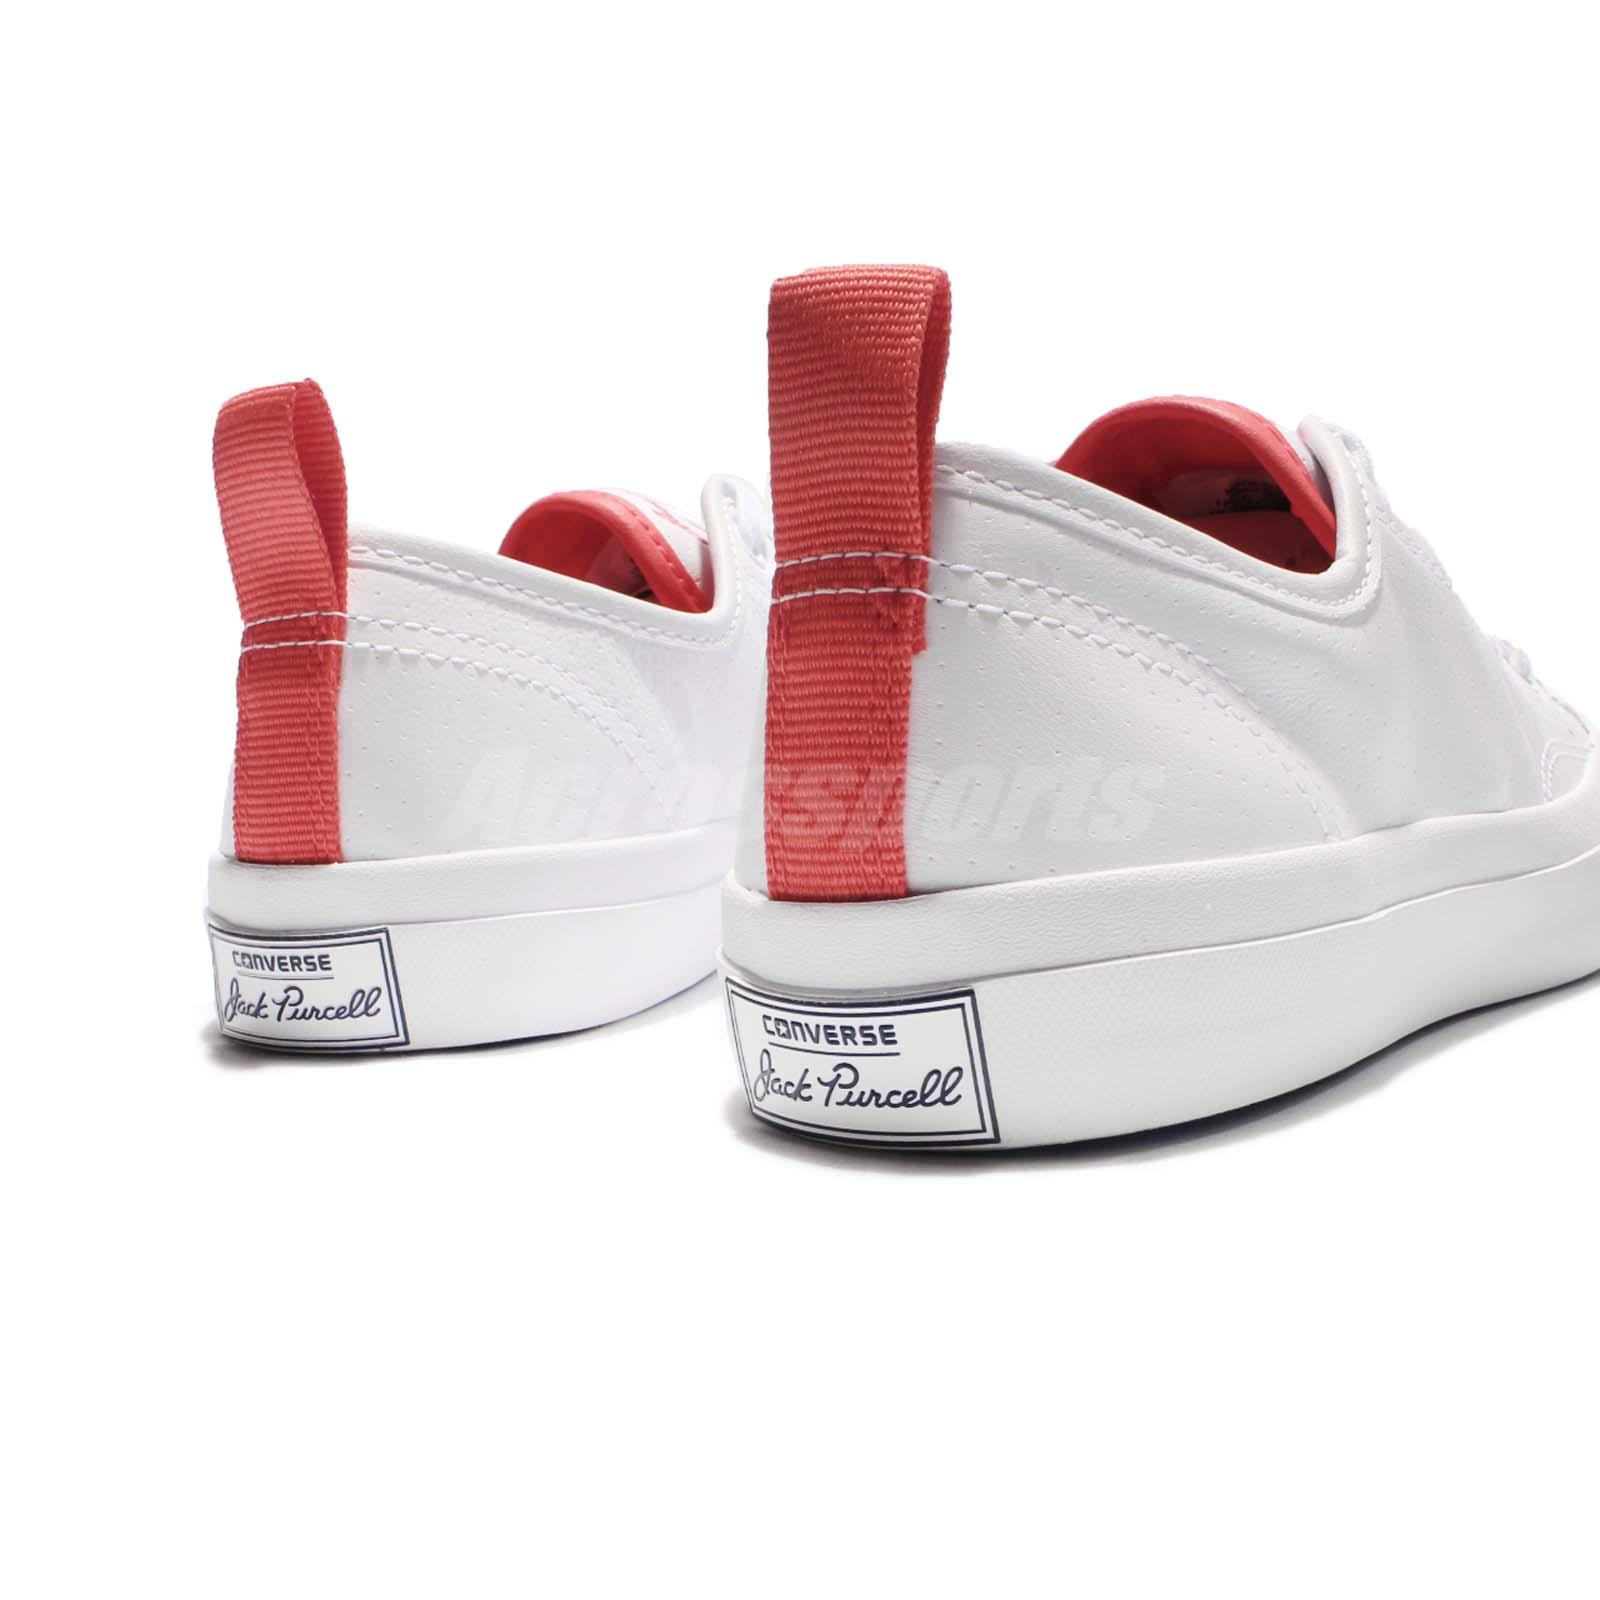 Converse jack purcell jack ox white red men heel strap shoes size chart nvjuhfo Choice Image